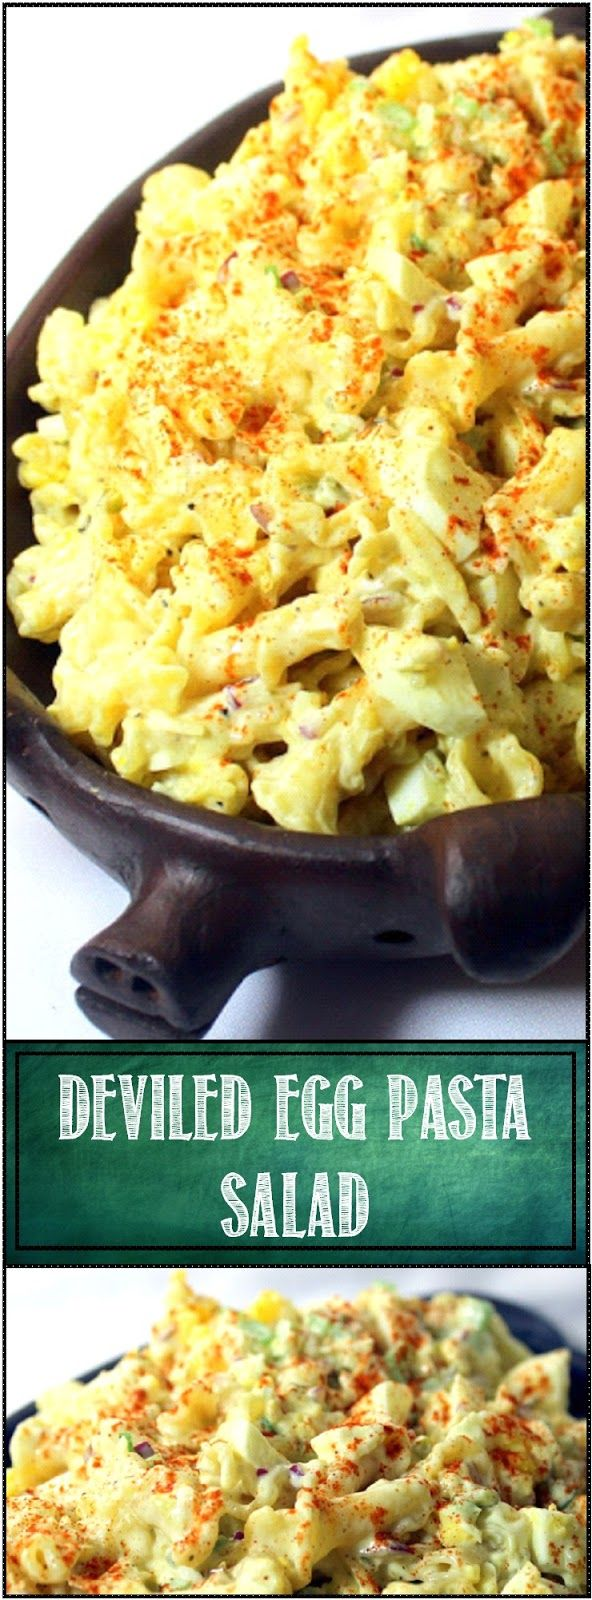 DEVILED EGG PASTA SALAD - Church PotLuck Side Dish... This is a FANTASTIC side dish. Surprisingly tasty, creamy sweet and tangy pasta salad. Best served cold, travels well so PERFECT to bring for any POTLUCK DINNER! All the taste of Deviled Eggs added to the sauce!